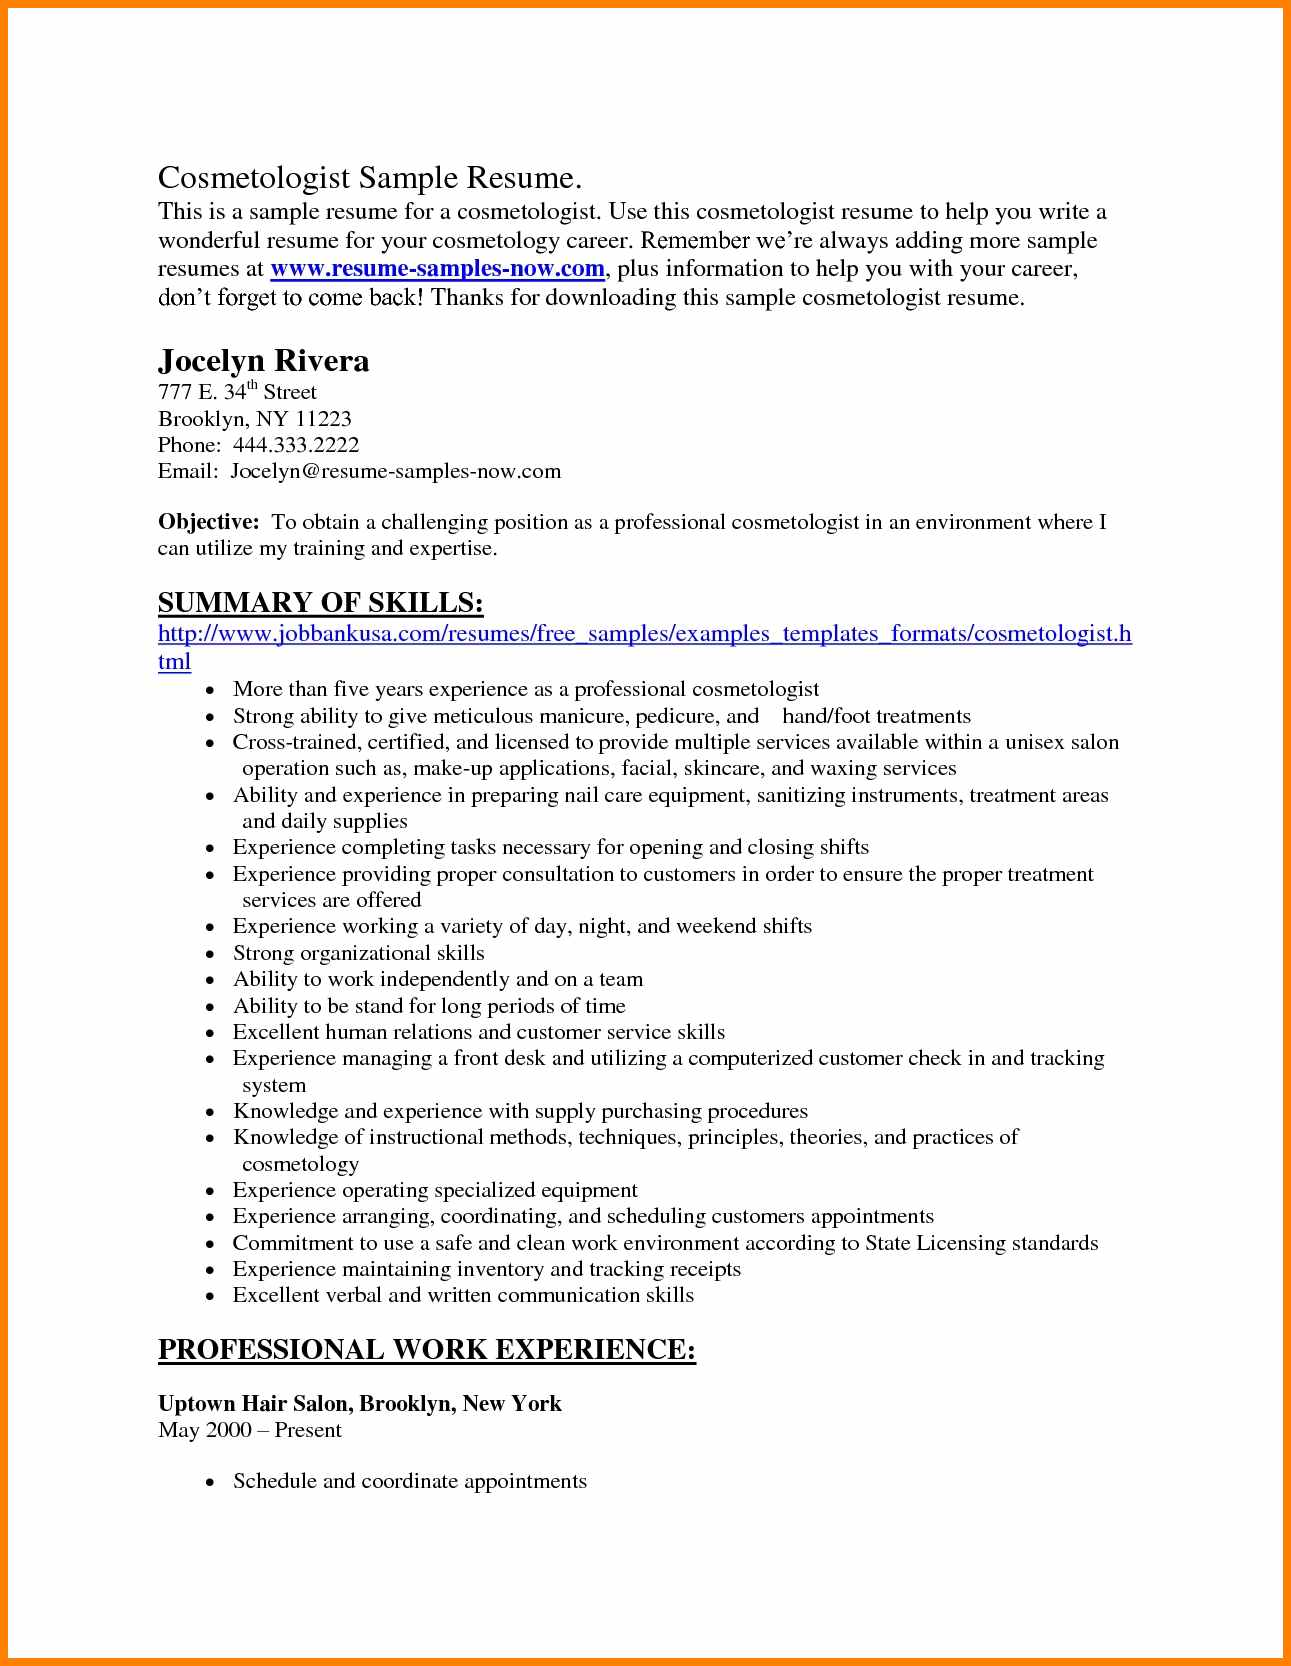 014 Cosmetology Resume Objective Waa Mood Exolgbabogadosco Temp Essays Scholarship Entrance Archaicawful Essay Examples Conclusion Full